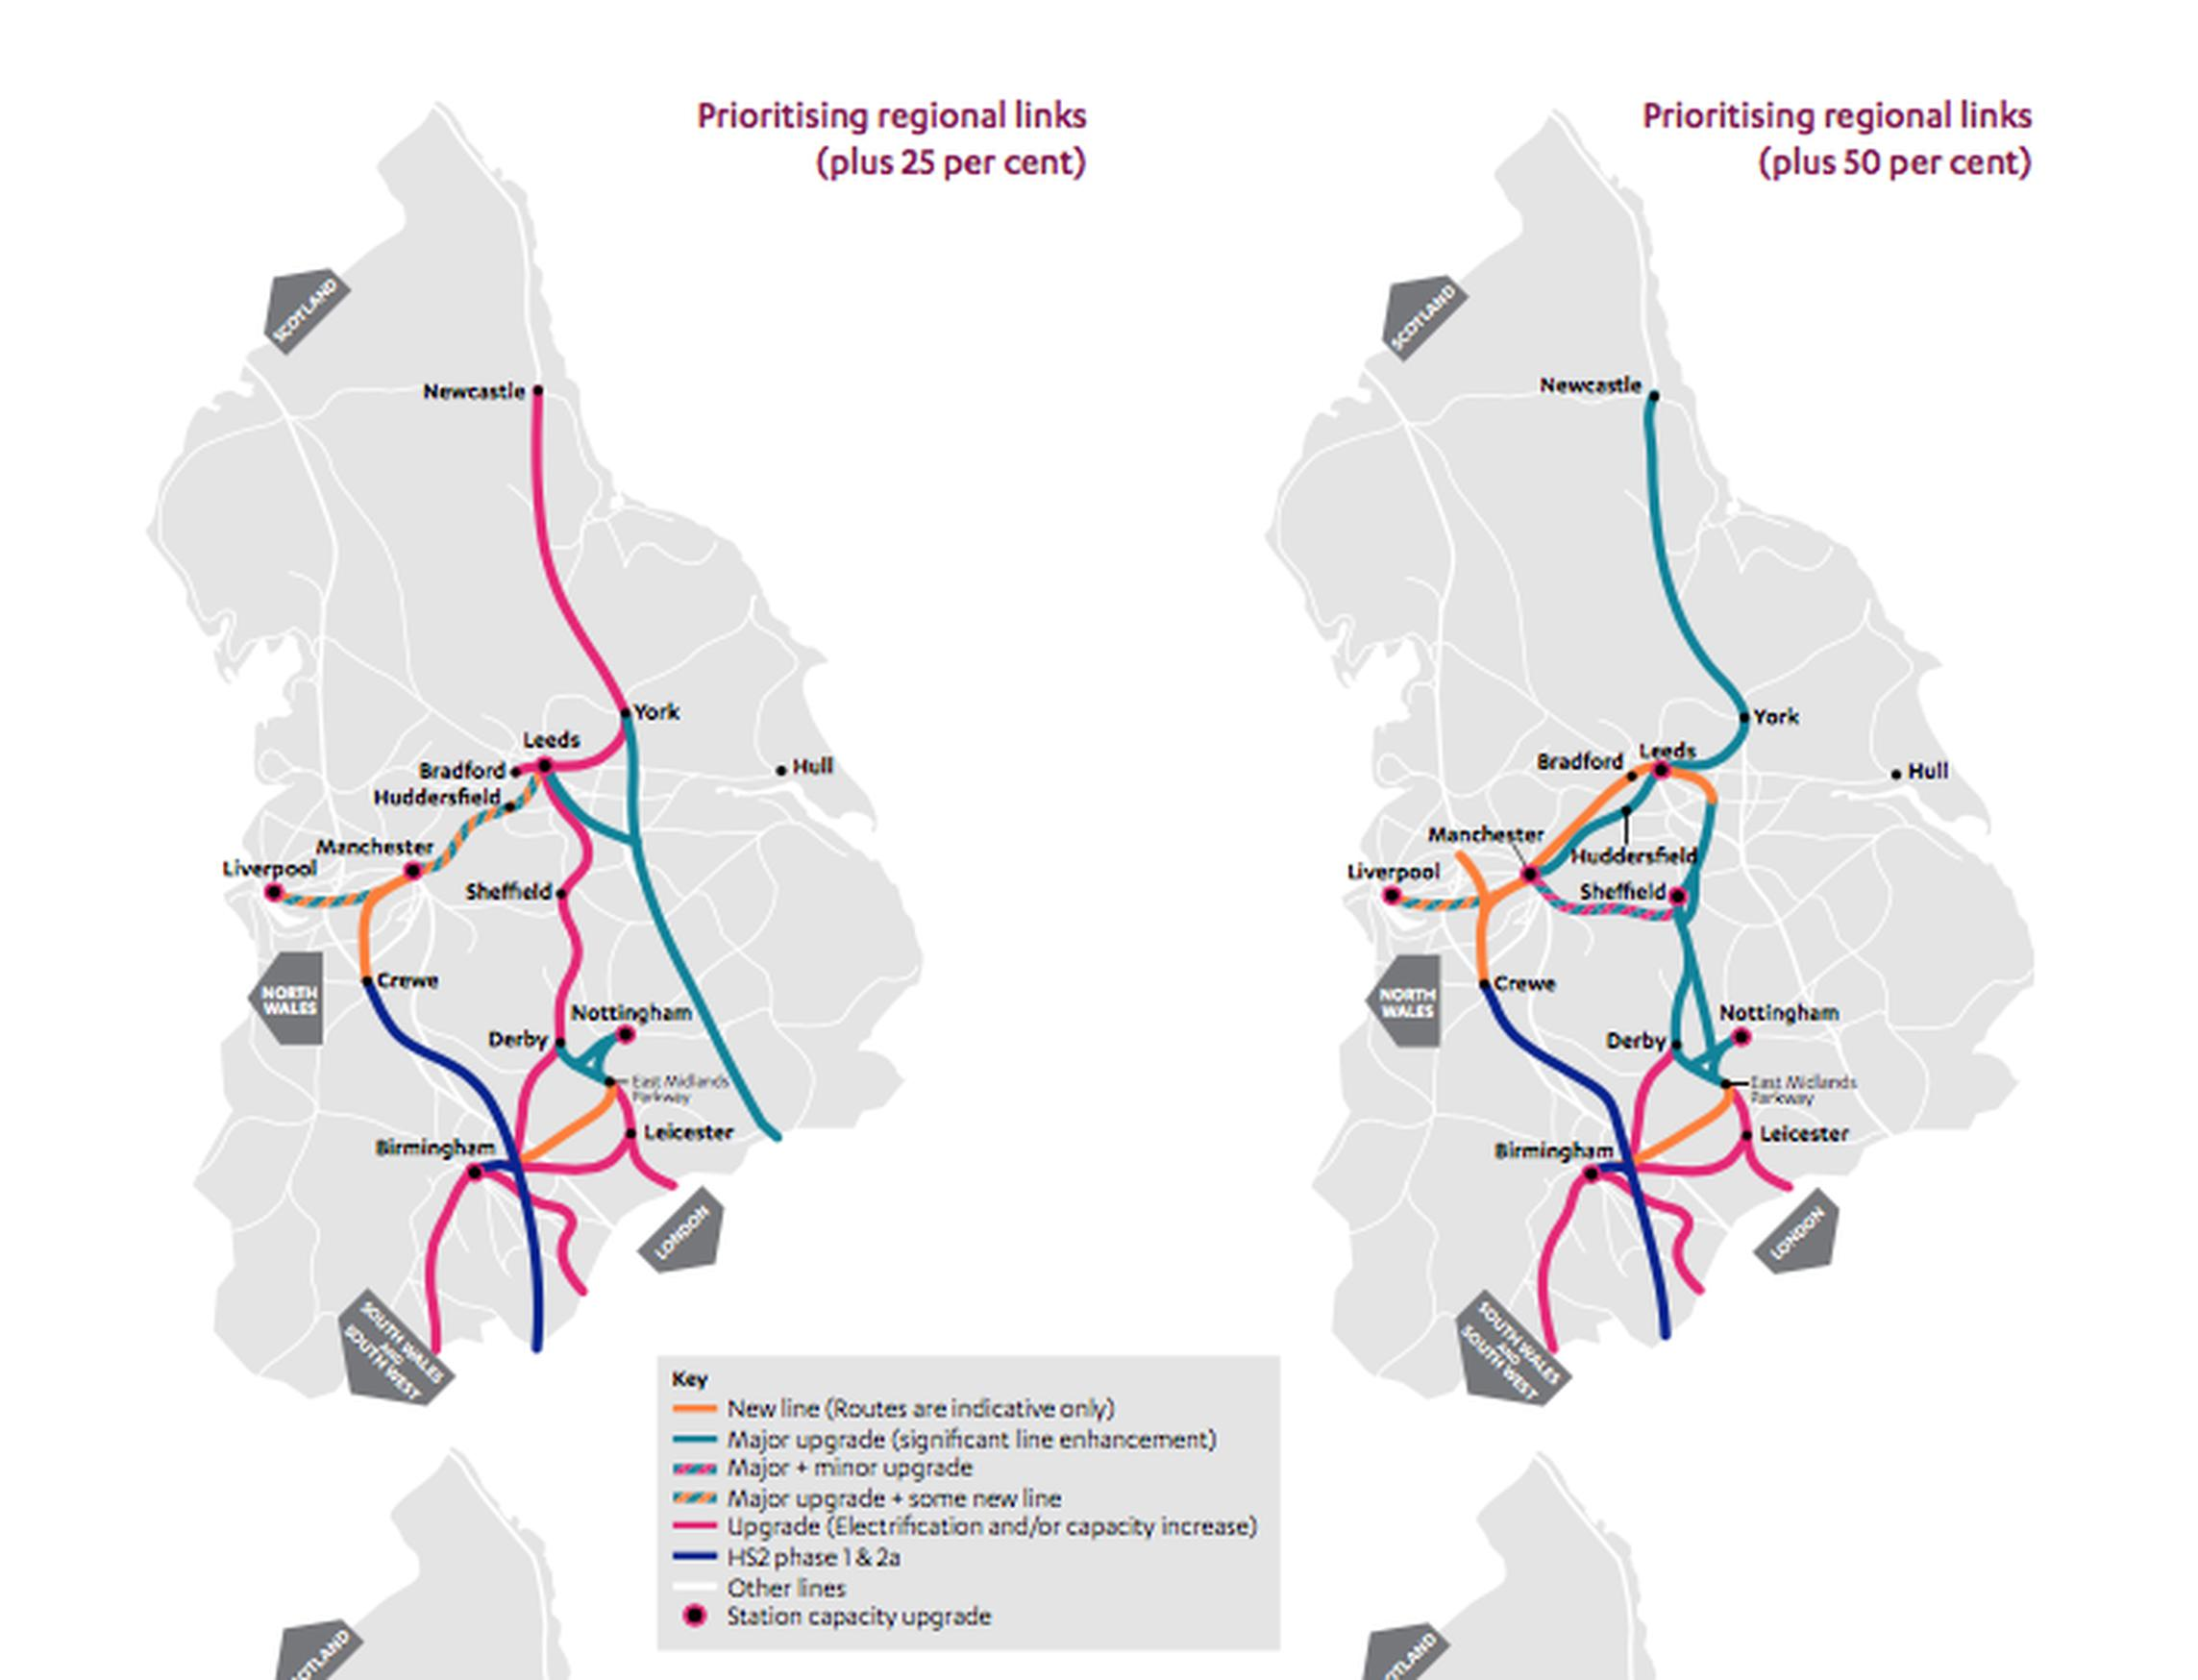 The NIC?recommends the 'prioritising regional links' scenario with spending of 25 per cent above baseline (left). The map on the right shows what could be delivered with expenditure 50 per cent above baseline